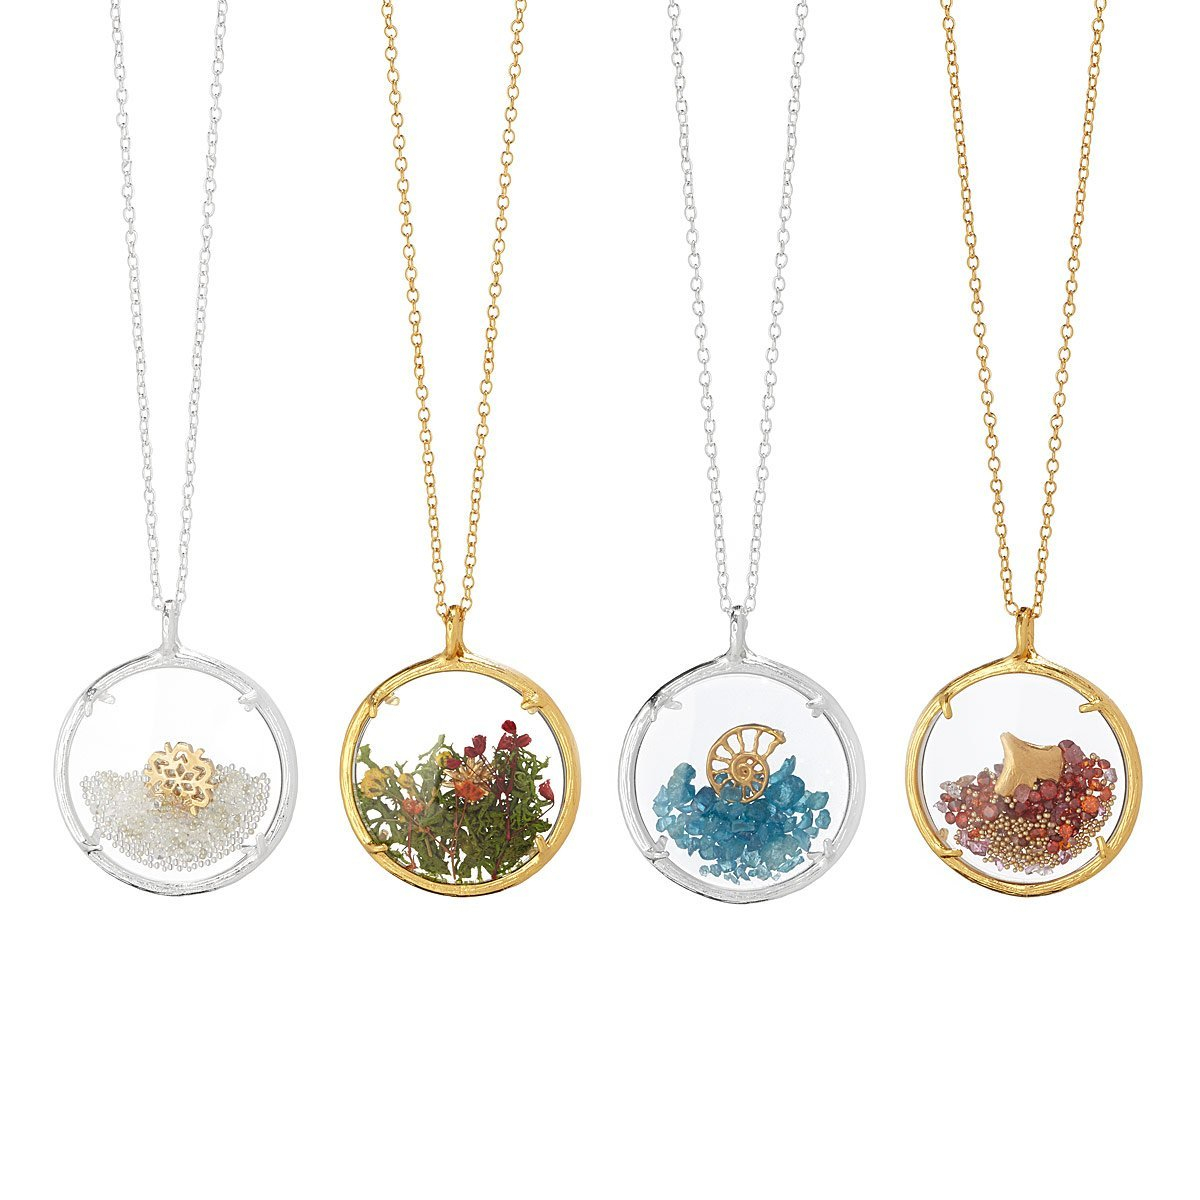 Four Seasons Glass Necklaces | Glass Jewelry, Glass Necklace Intended For Most Recent Classic Flower Locket Element Necklaces (View 14 of 25)